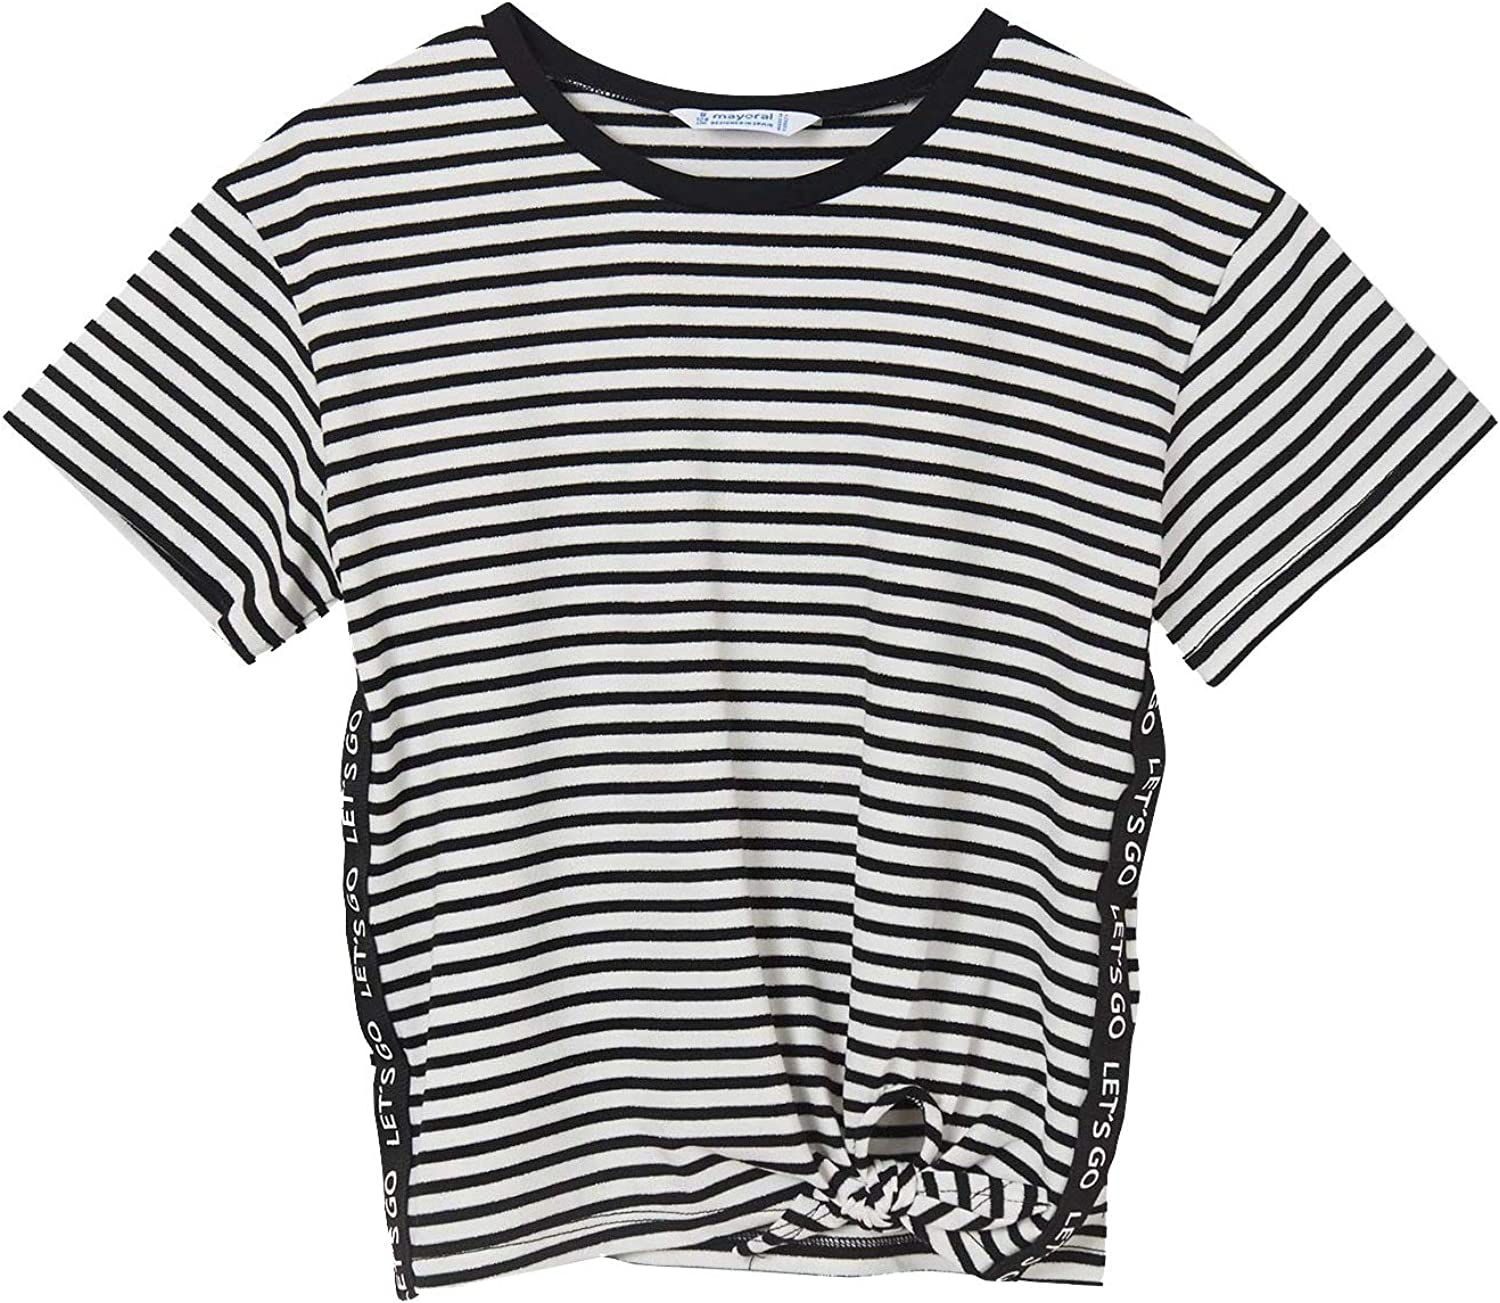 Mayoral - S/s t-Shirt for Girls - 6017, Black